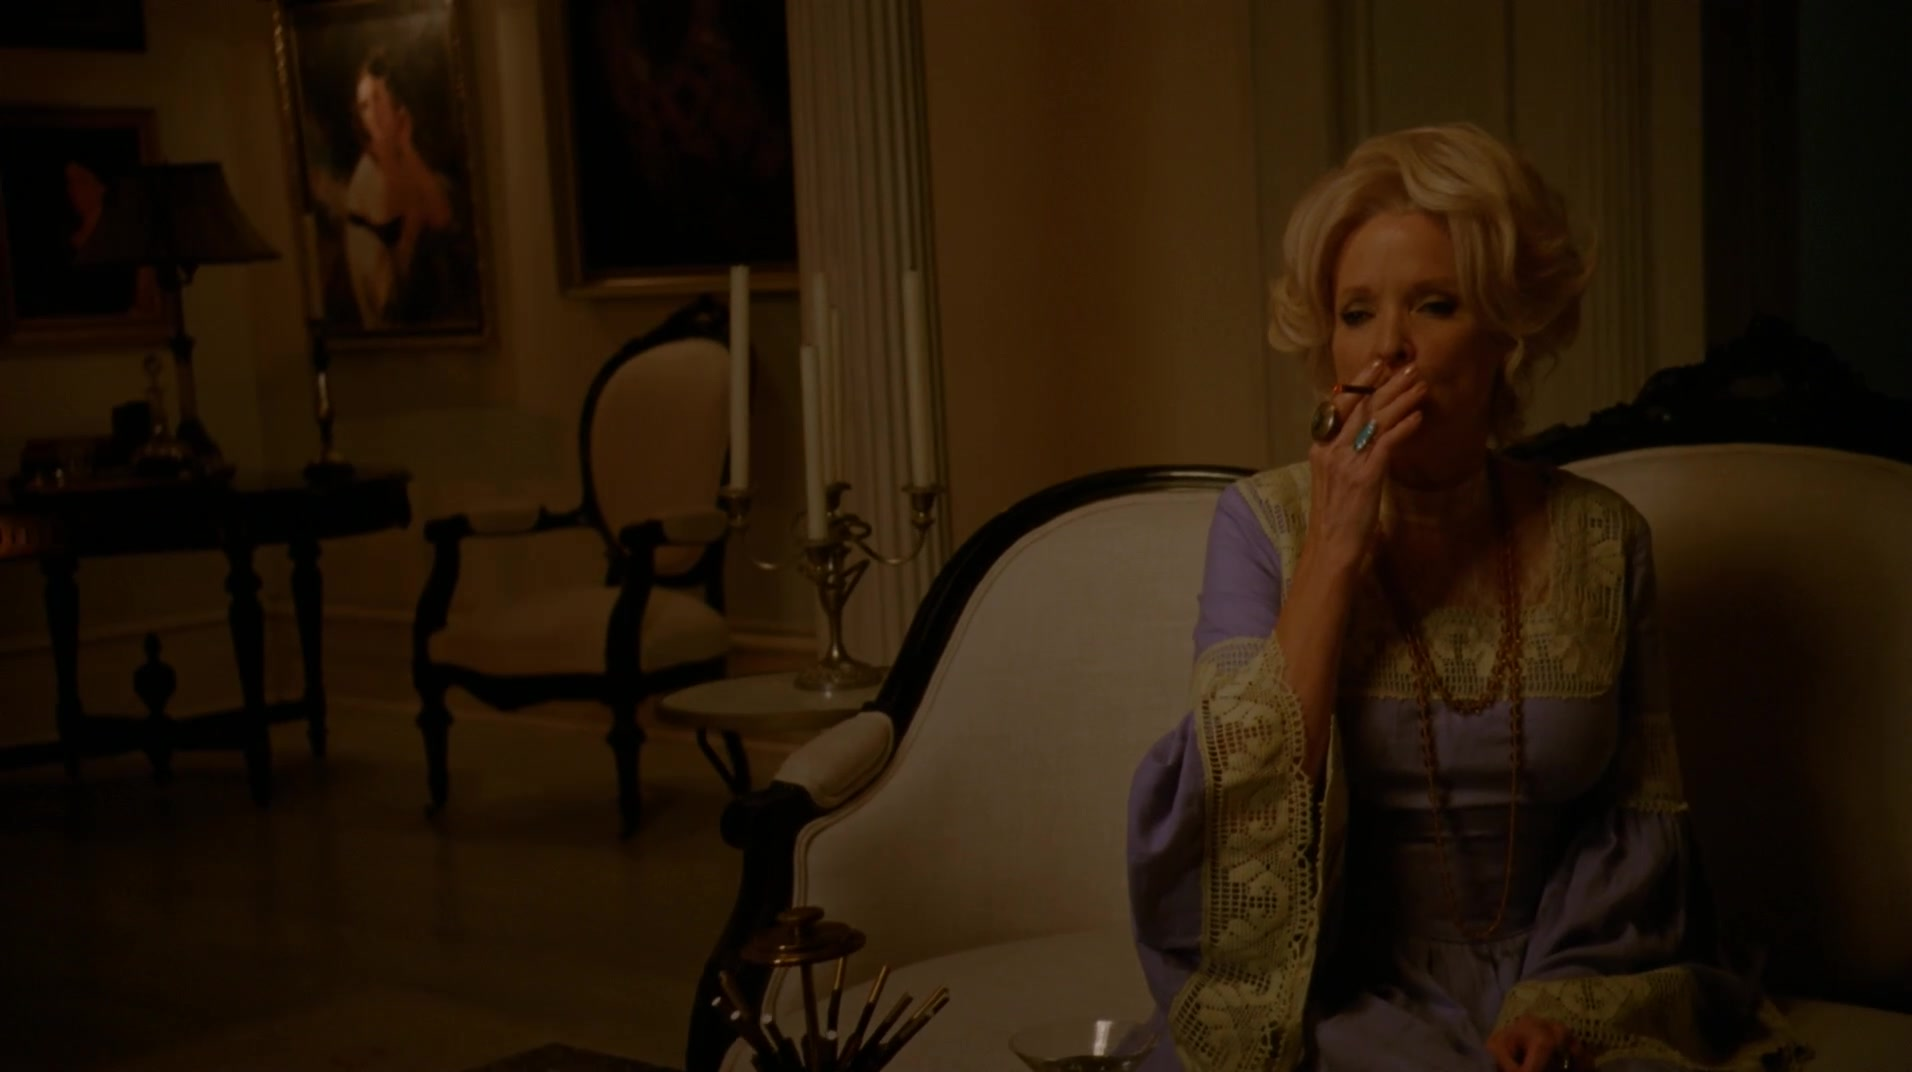 American_Horror_Story_S03E03_The_Replacements_1080p_KISSTHEMGOODBYE_0084